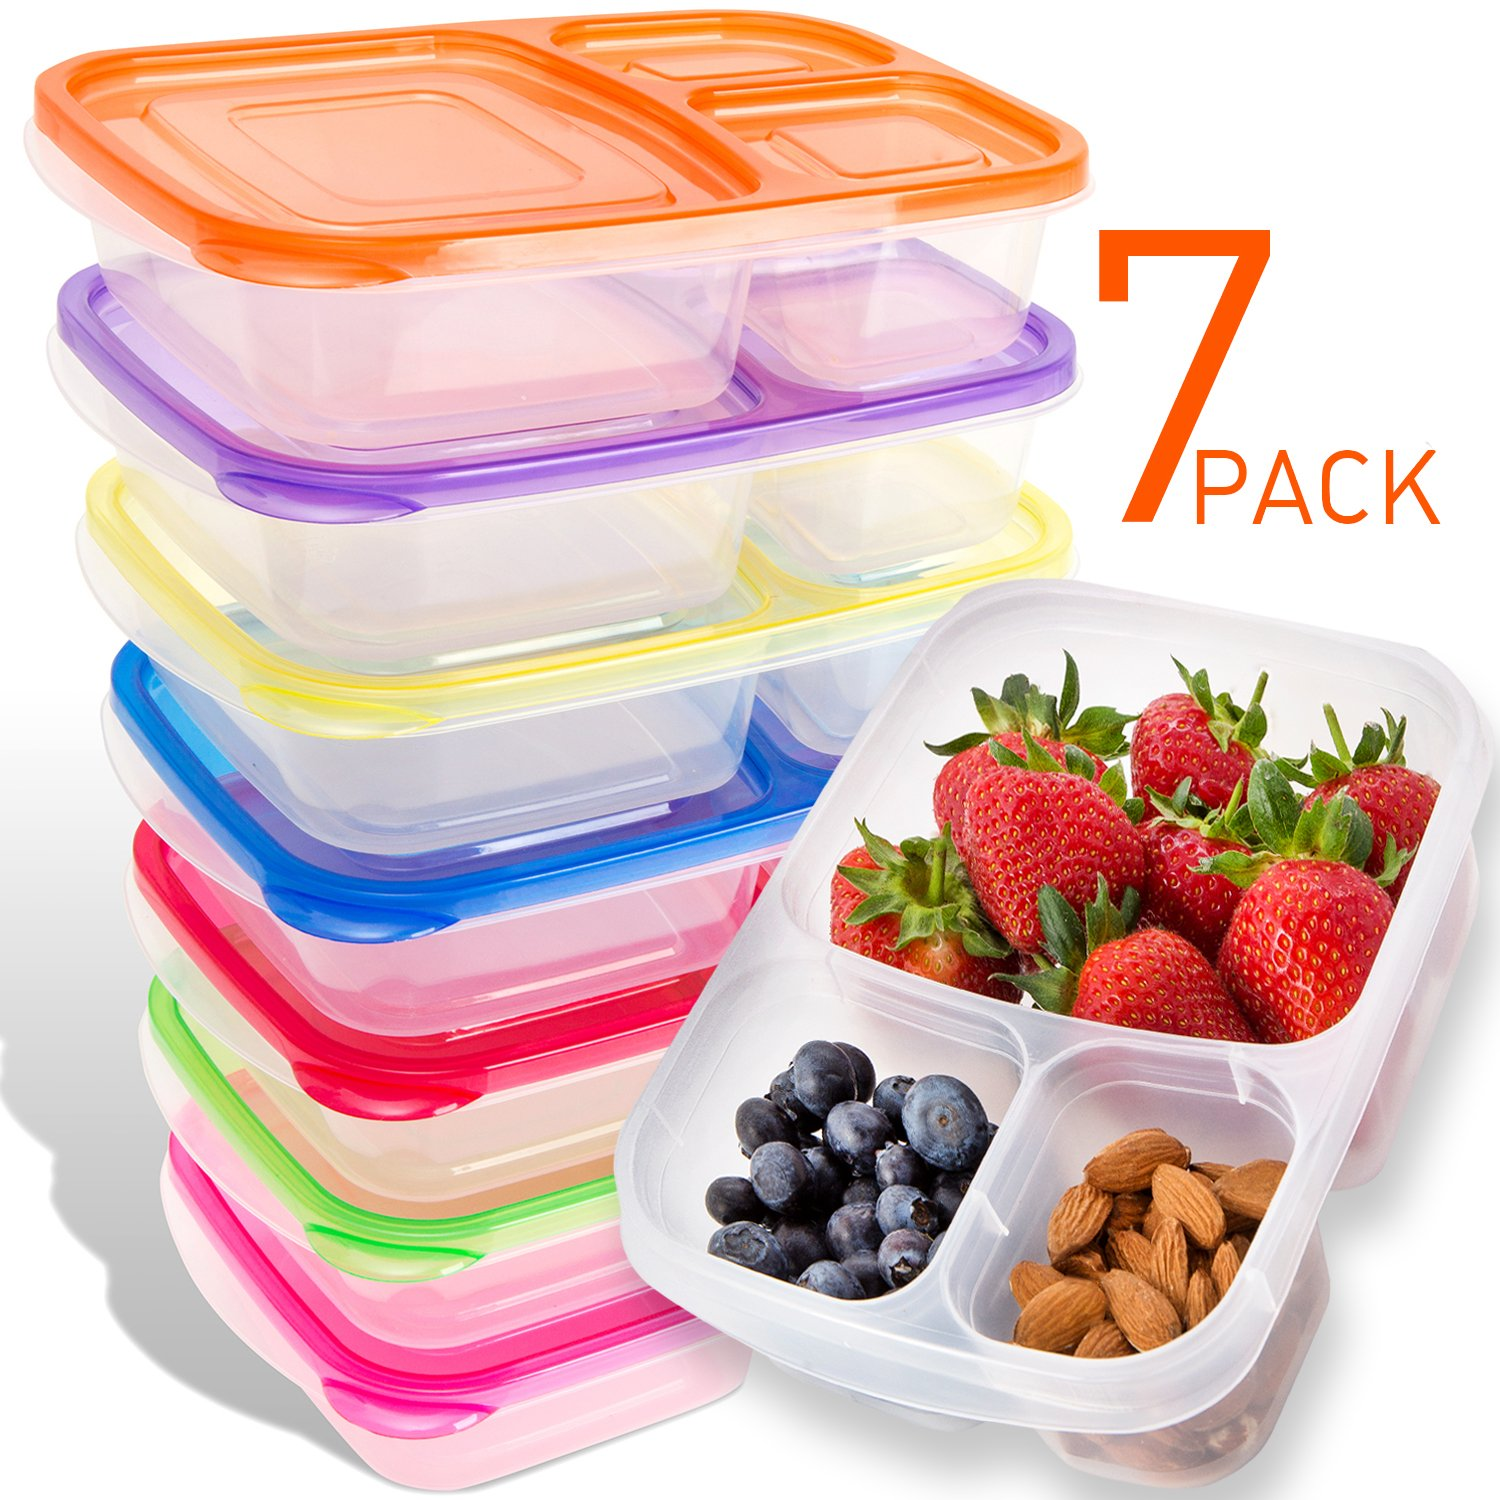 Bento Lunch Box Containers 7 Pack for Kids Adults Plastic Divided 3